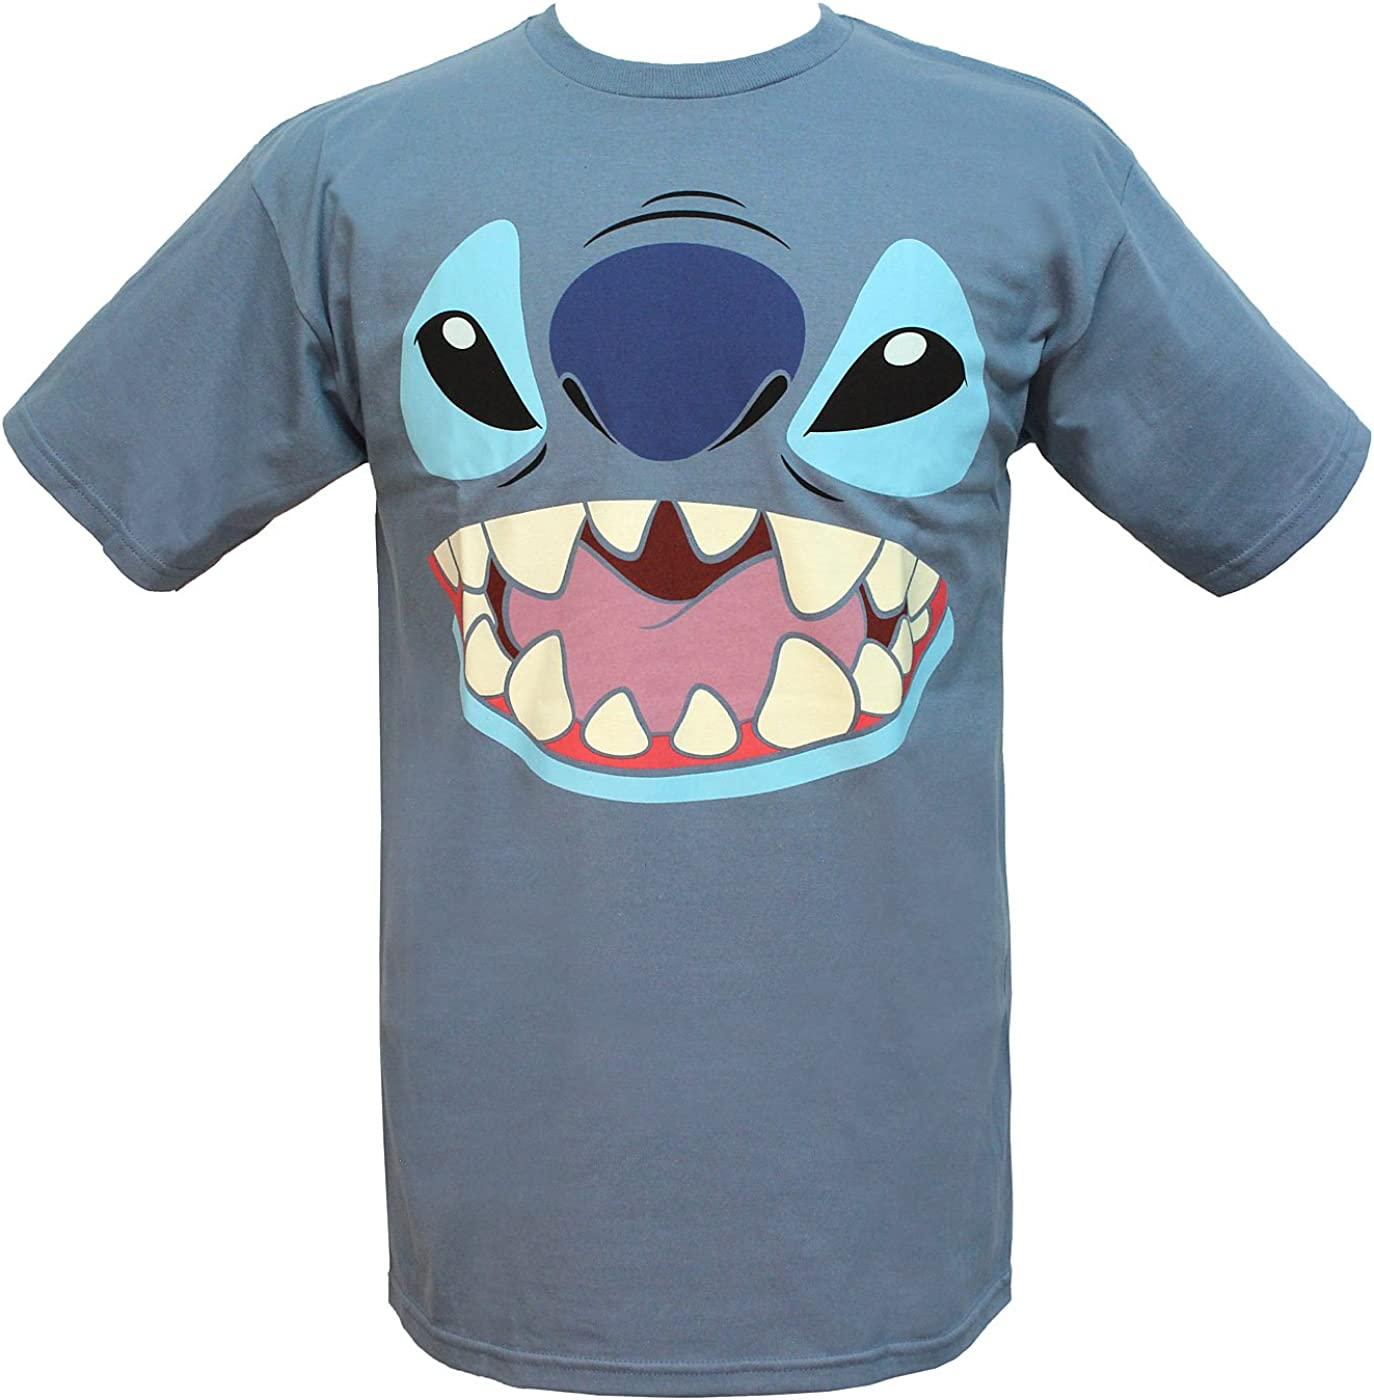 Disney Lilo y Stitch Big Face Disfraz Camiseta: Amazon.es: Ropa y ...